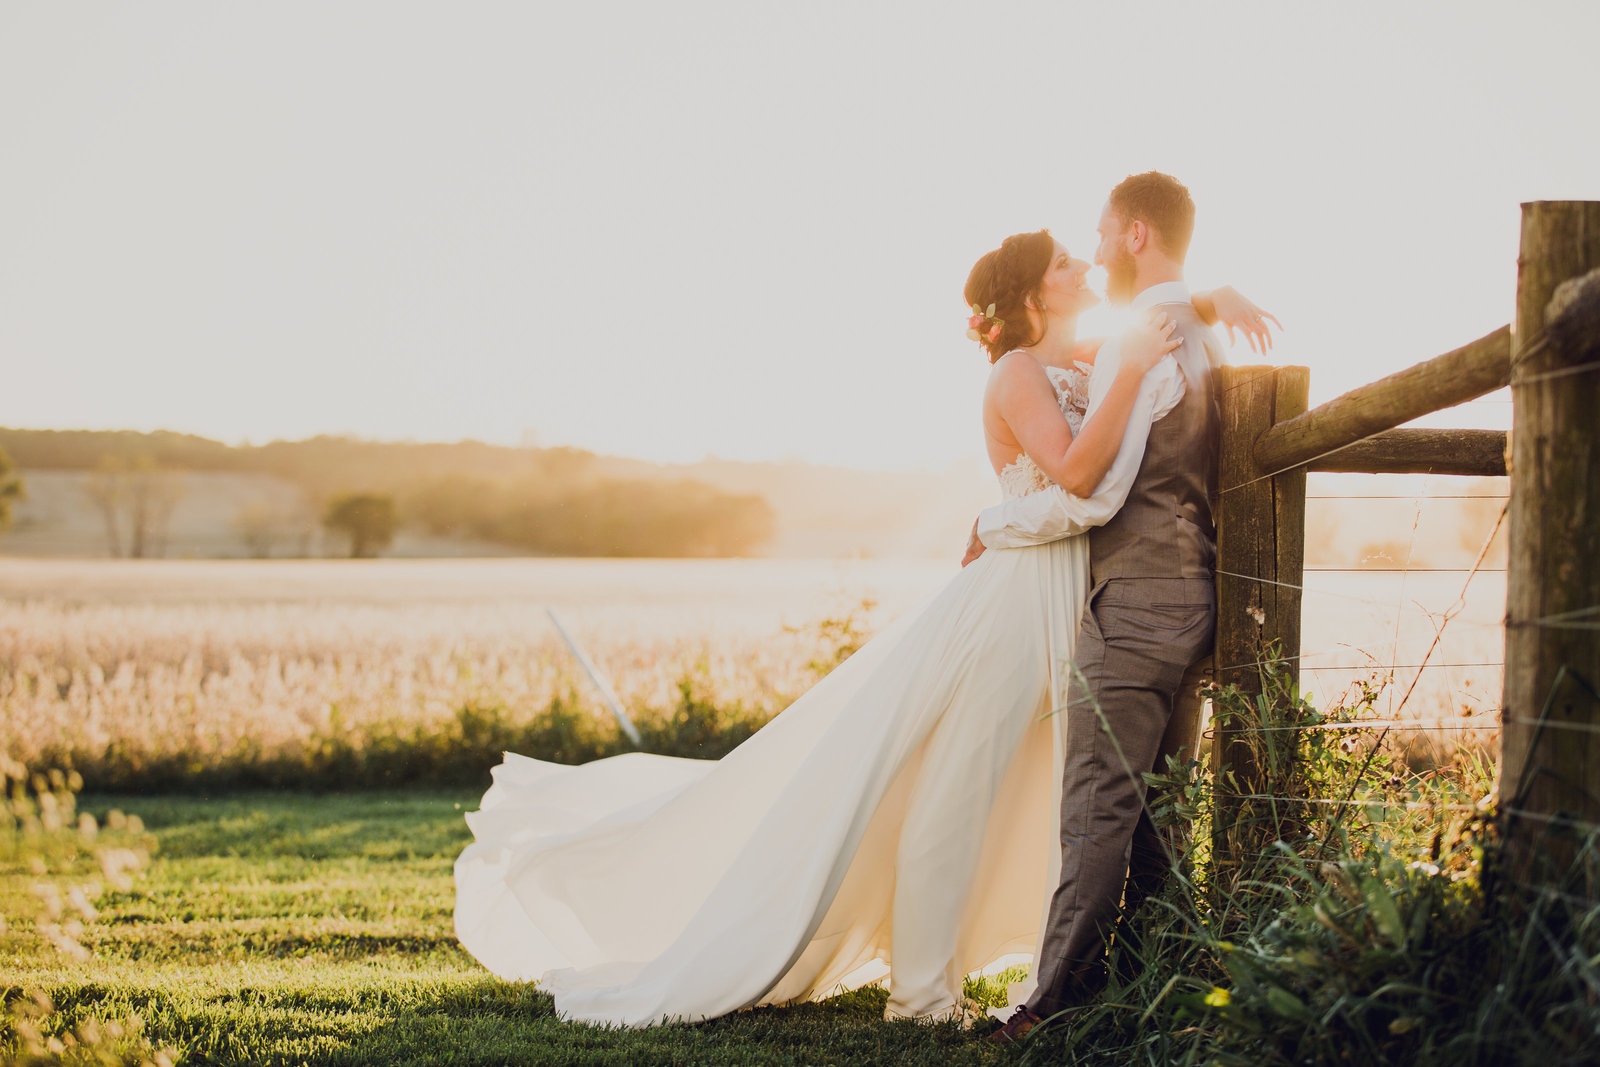 Erica Kay Photography - Laura & Shawn Wedding-520